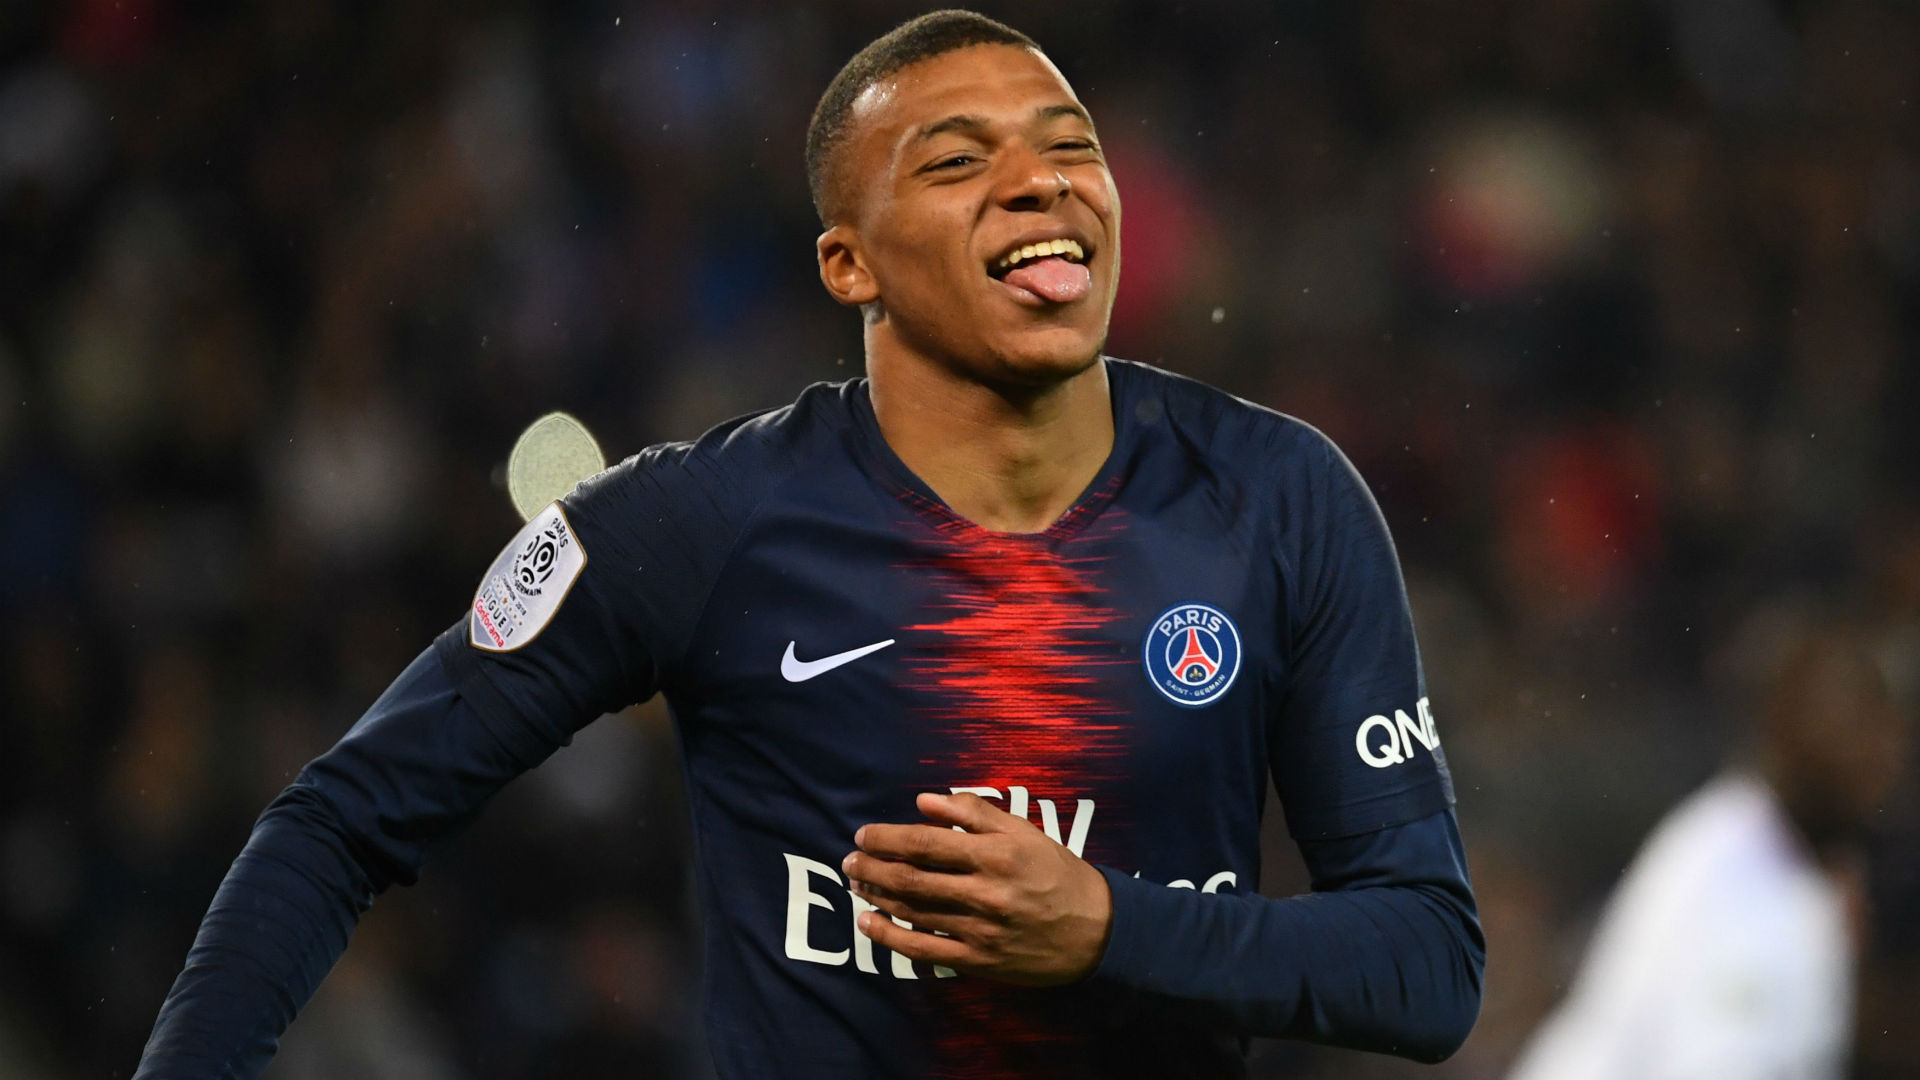 Ligue 1 2019-20 fixtures: PSG start title defence at home to Nimes